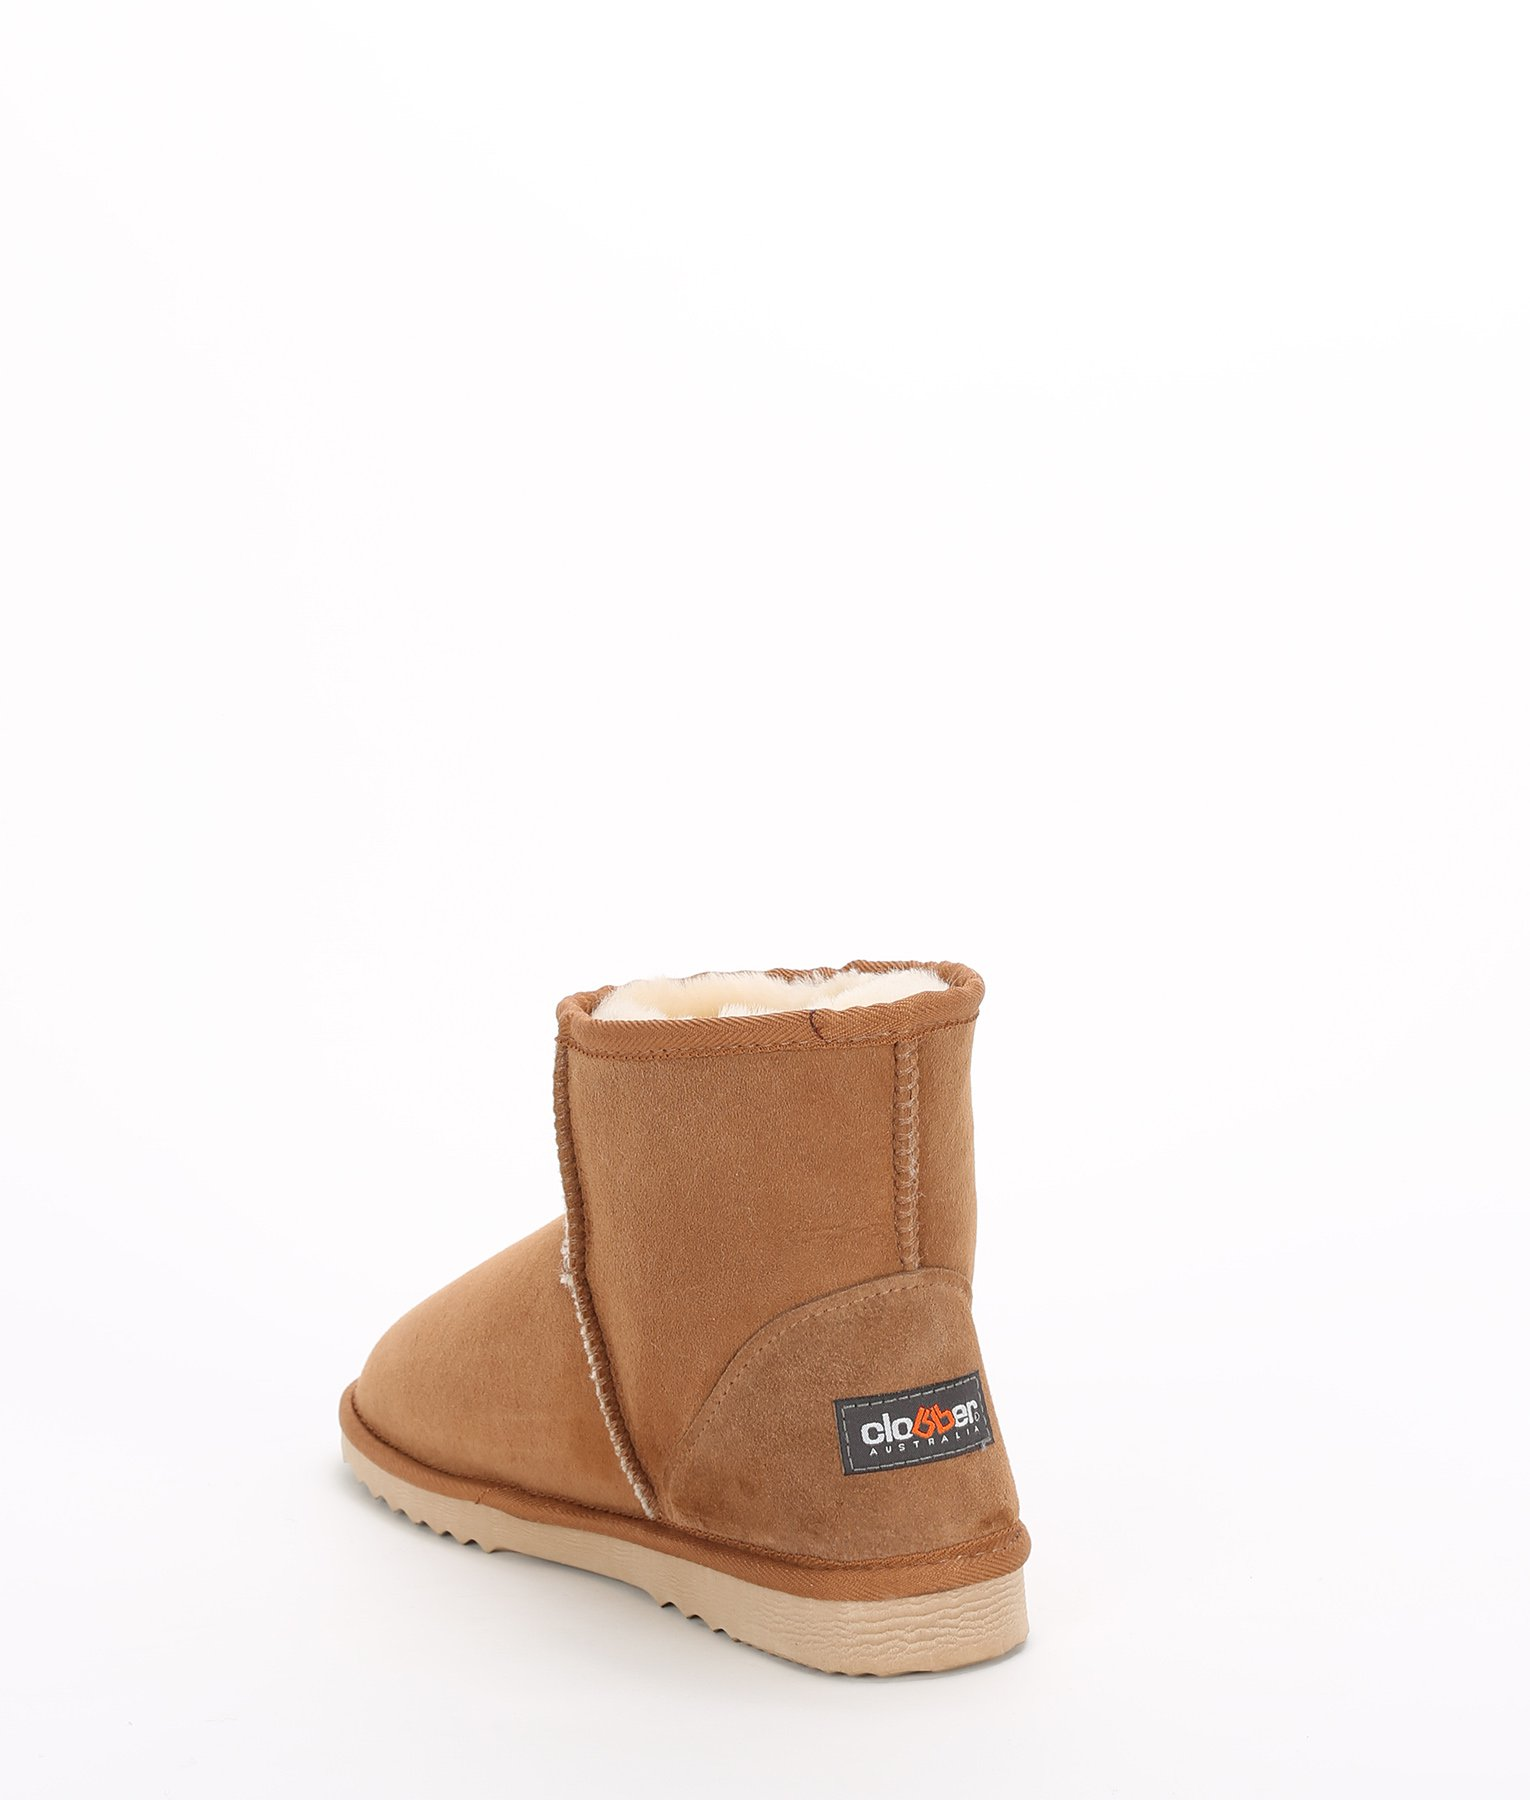 buy ugg boots in orlando